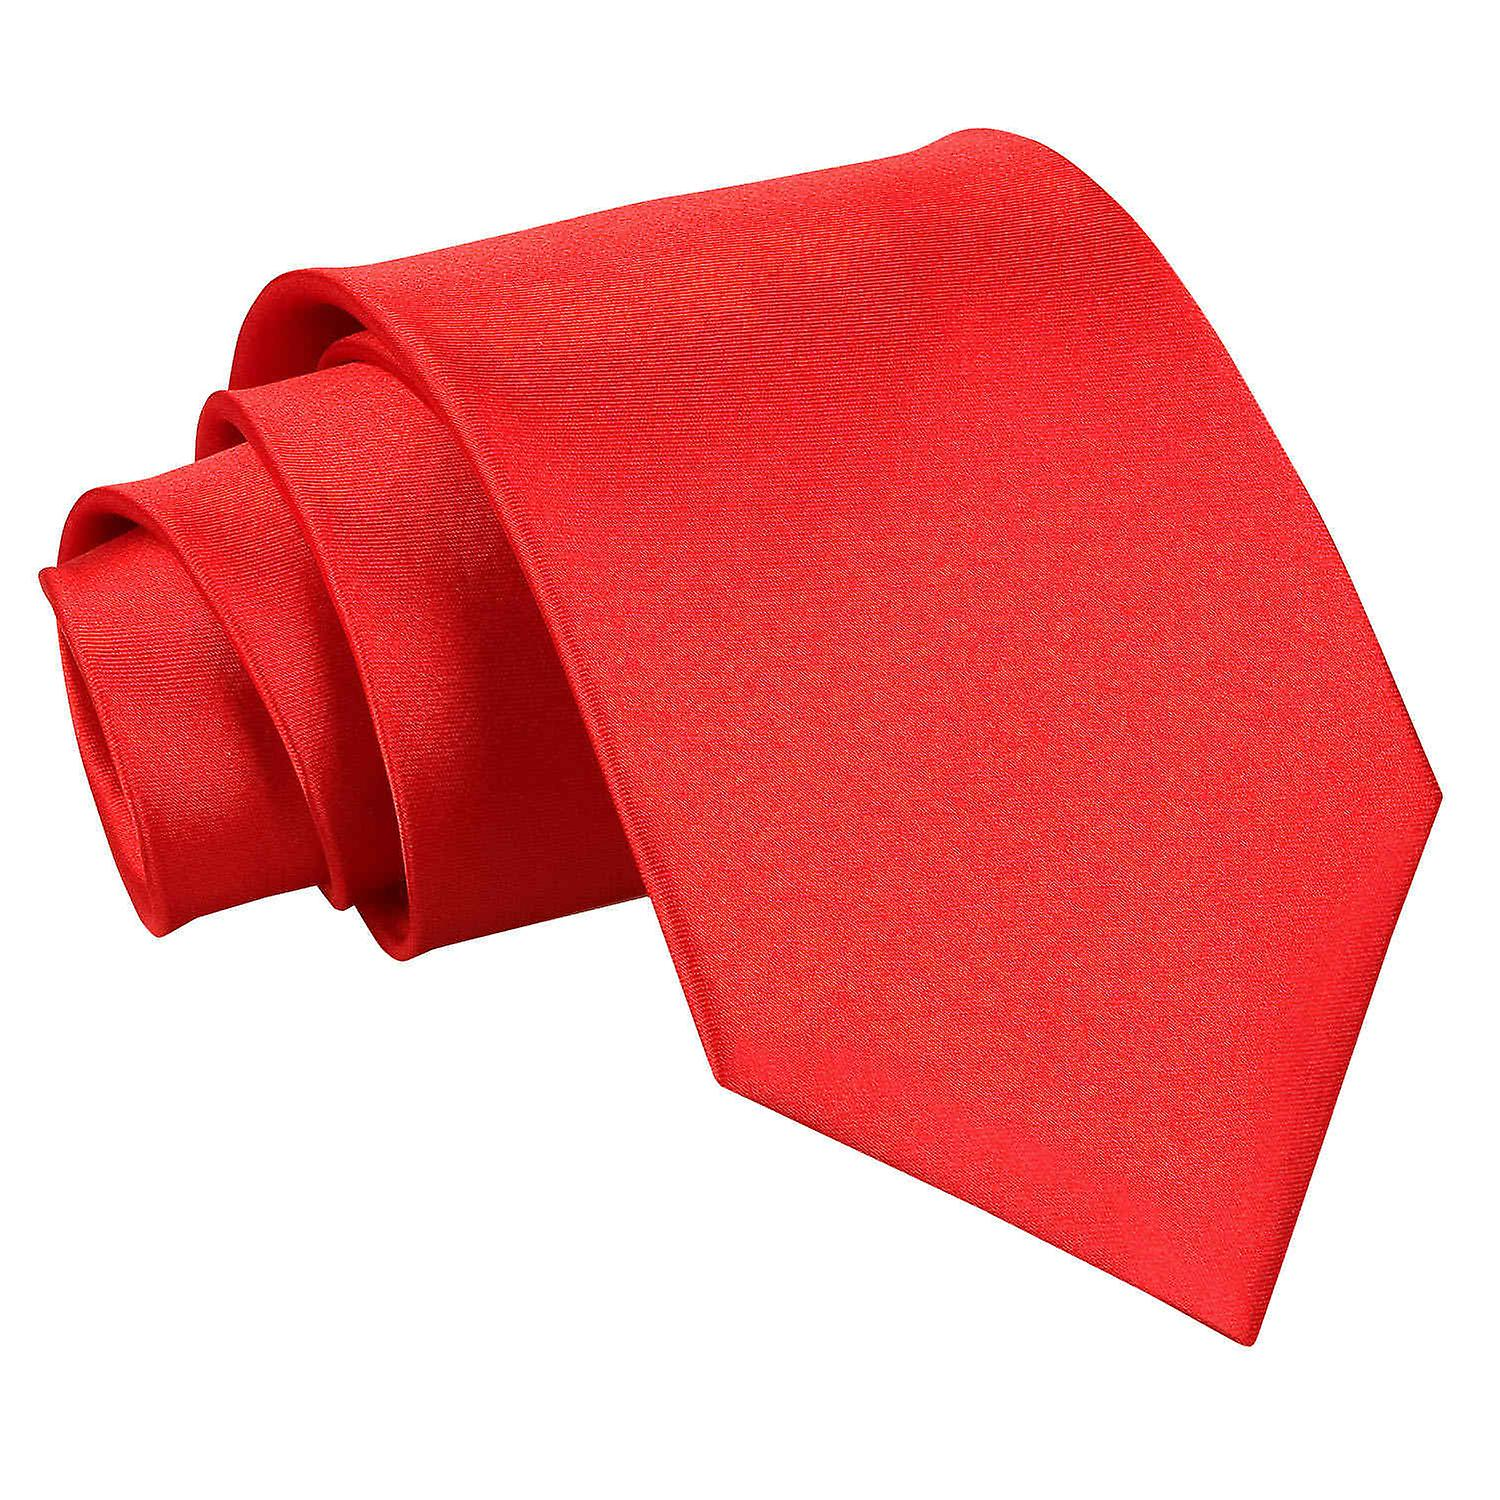 Plain Red Satin Extra Long Tie